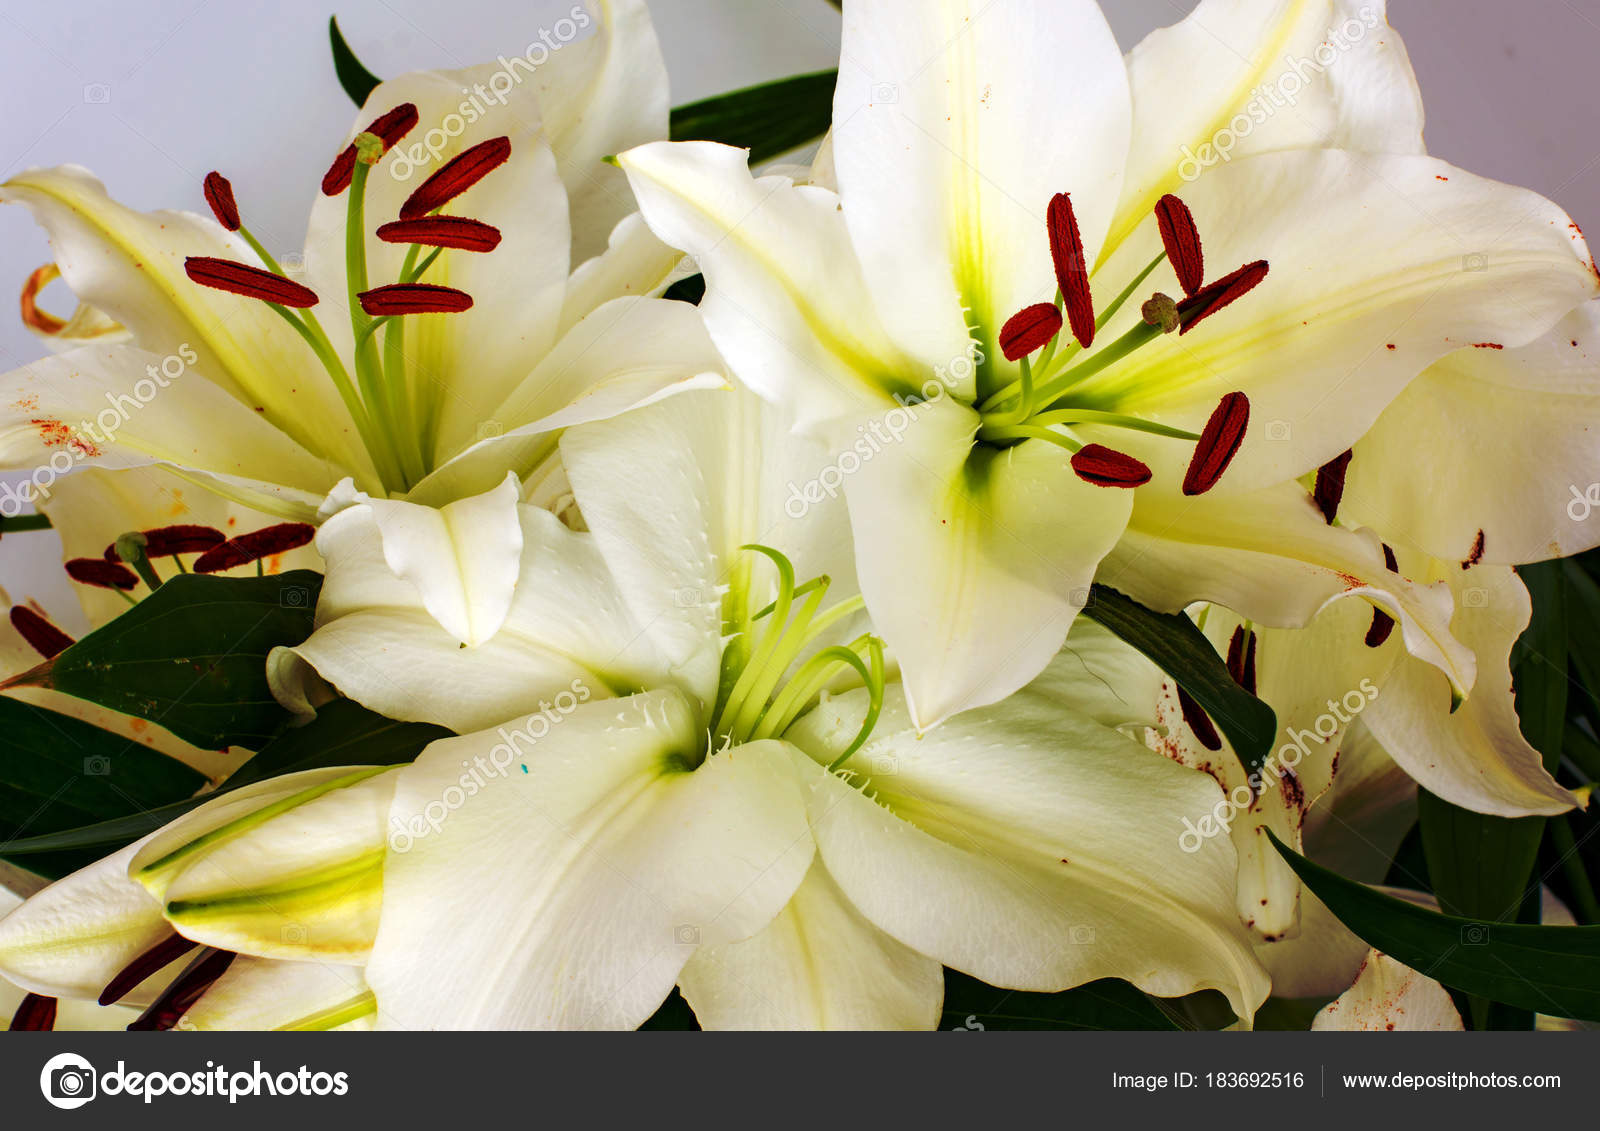 Flowers lilies adorned with stones and different decorations flowers lilies adorned with stones and different decorations stock photo izmirmasajfo Image collections